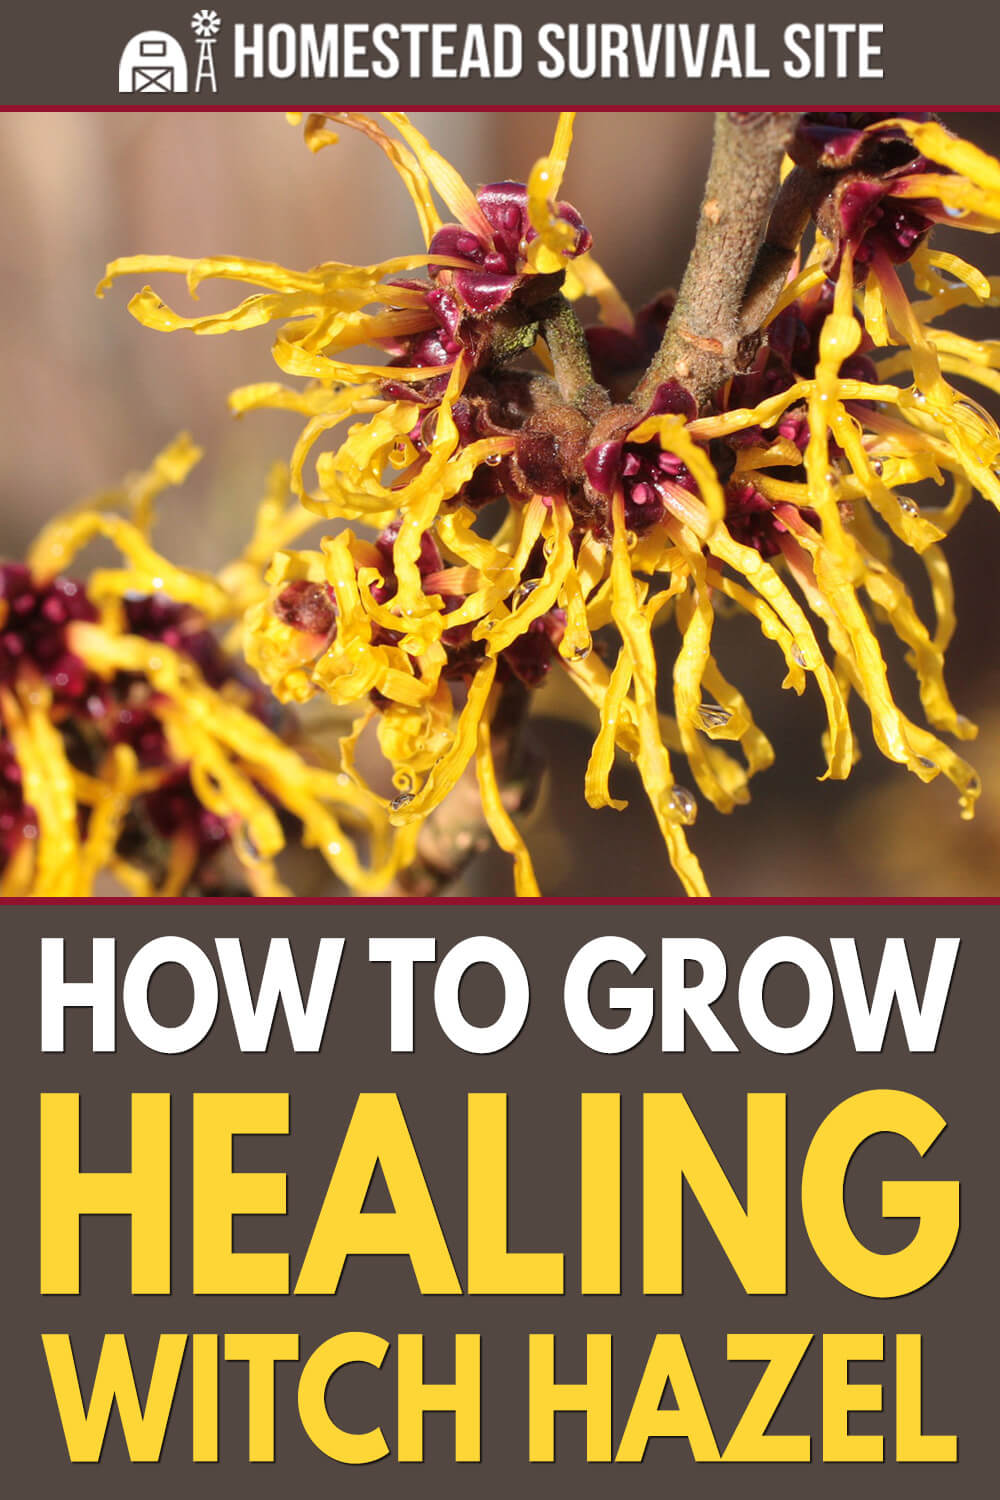 How To Grow Healing Witch Hazel